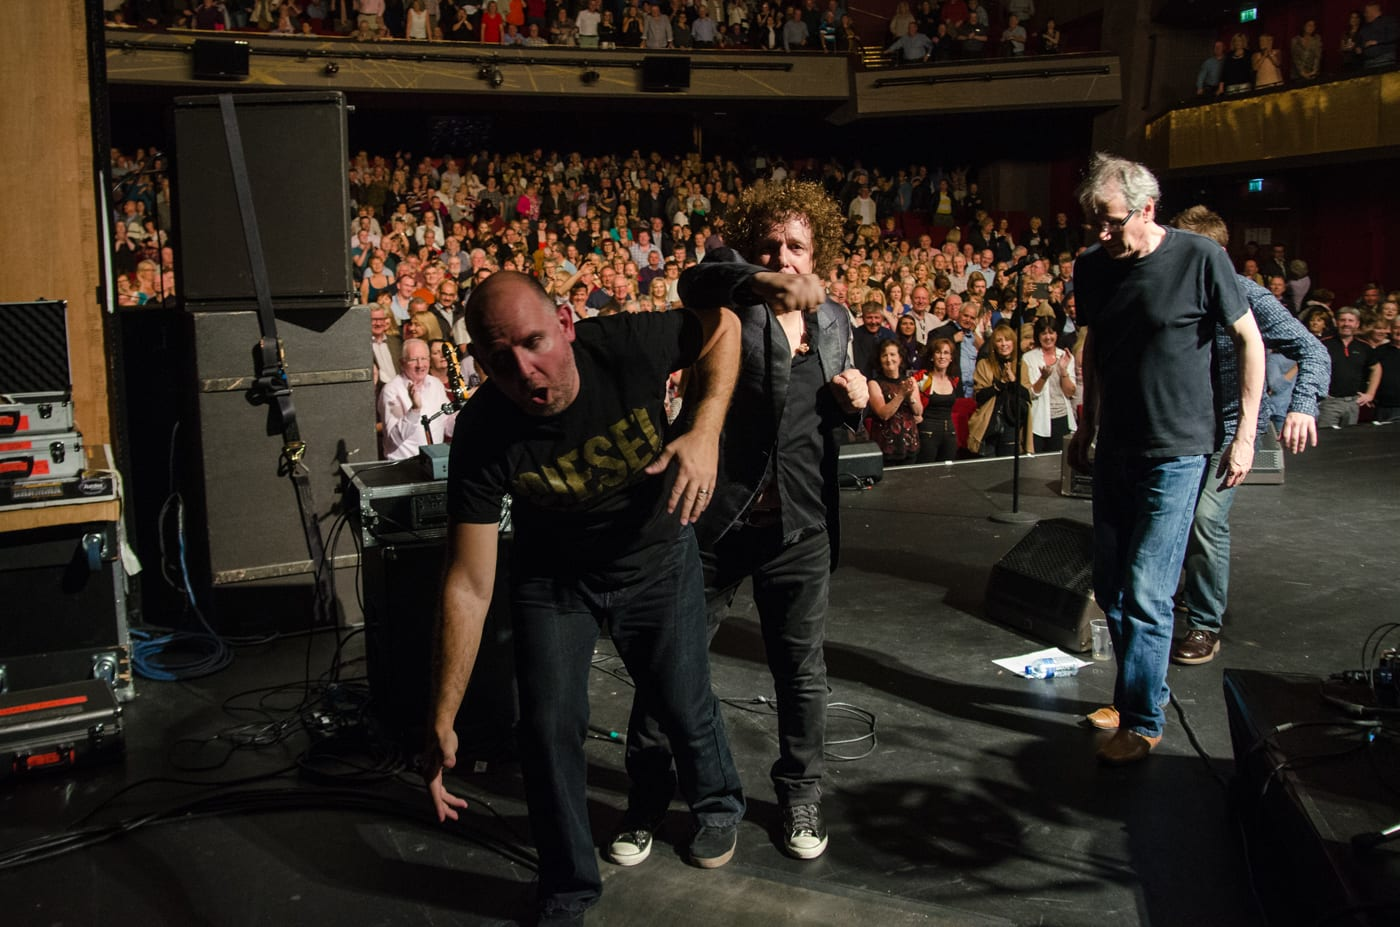 Leo Sayer at Bord Gais Energy Theatre by Sean Smyth (16-10-15) (129 of 129)